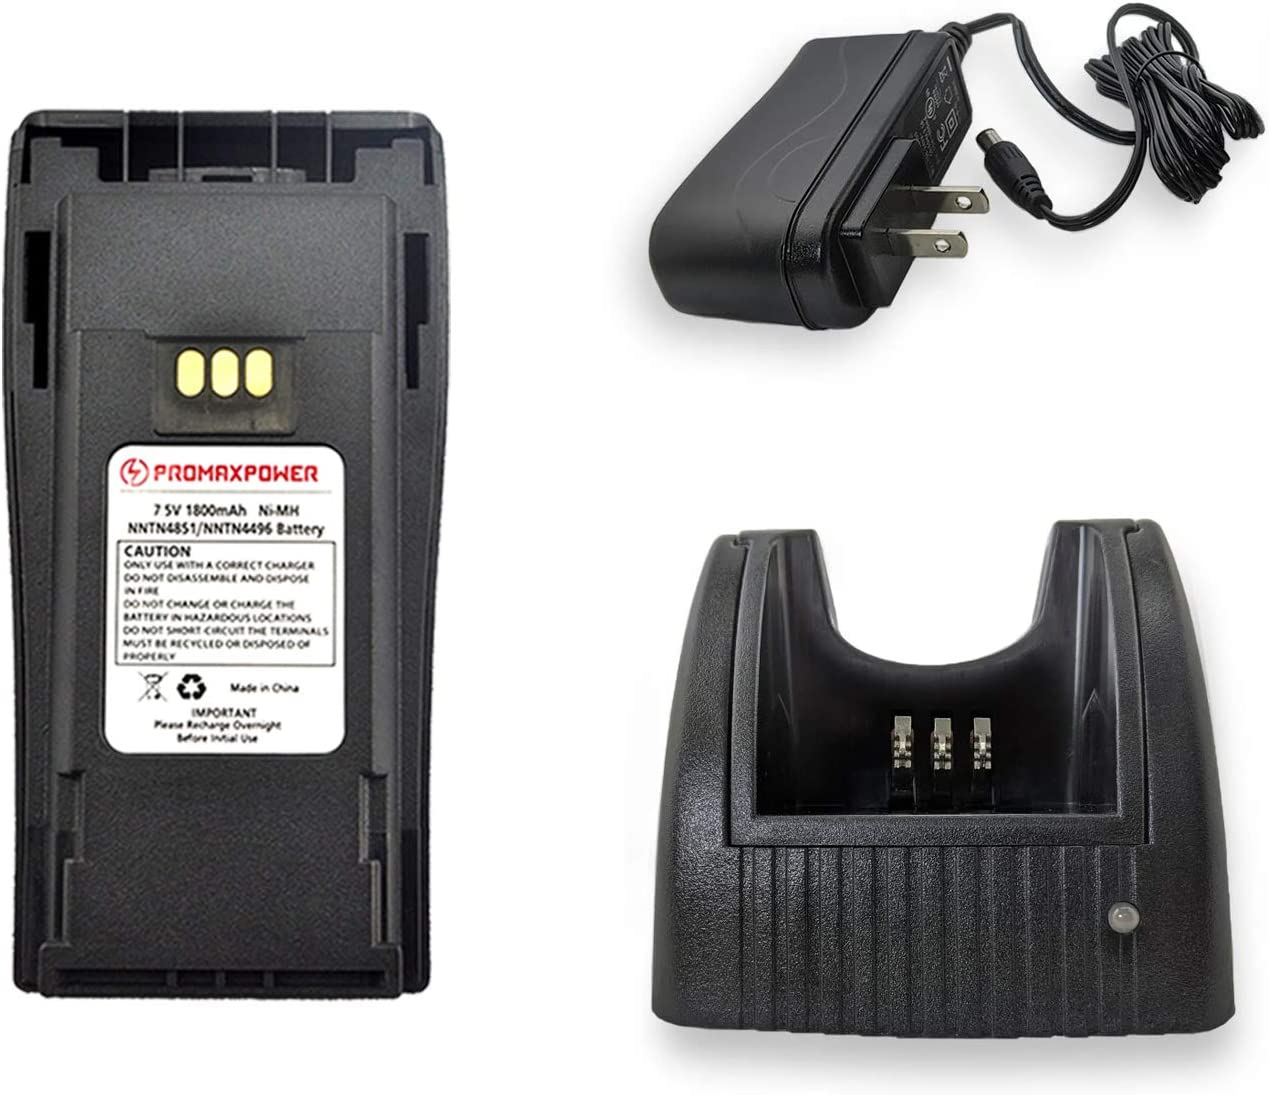 Battery Spring new work Rapid Universal Charger Super Special SALE held for Kit Motorola